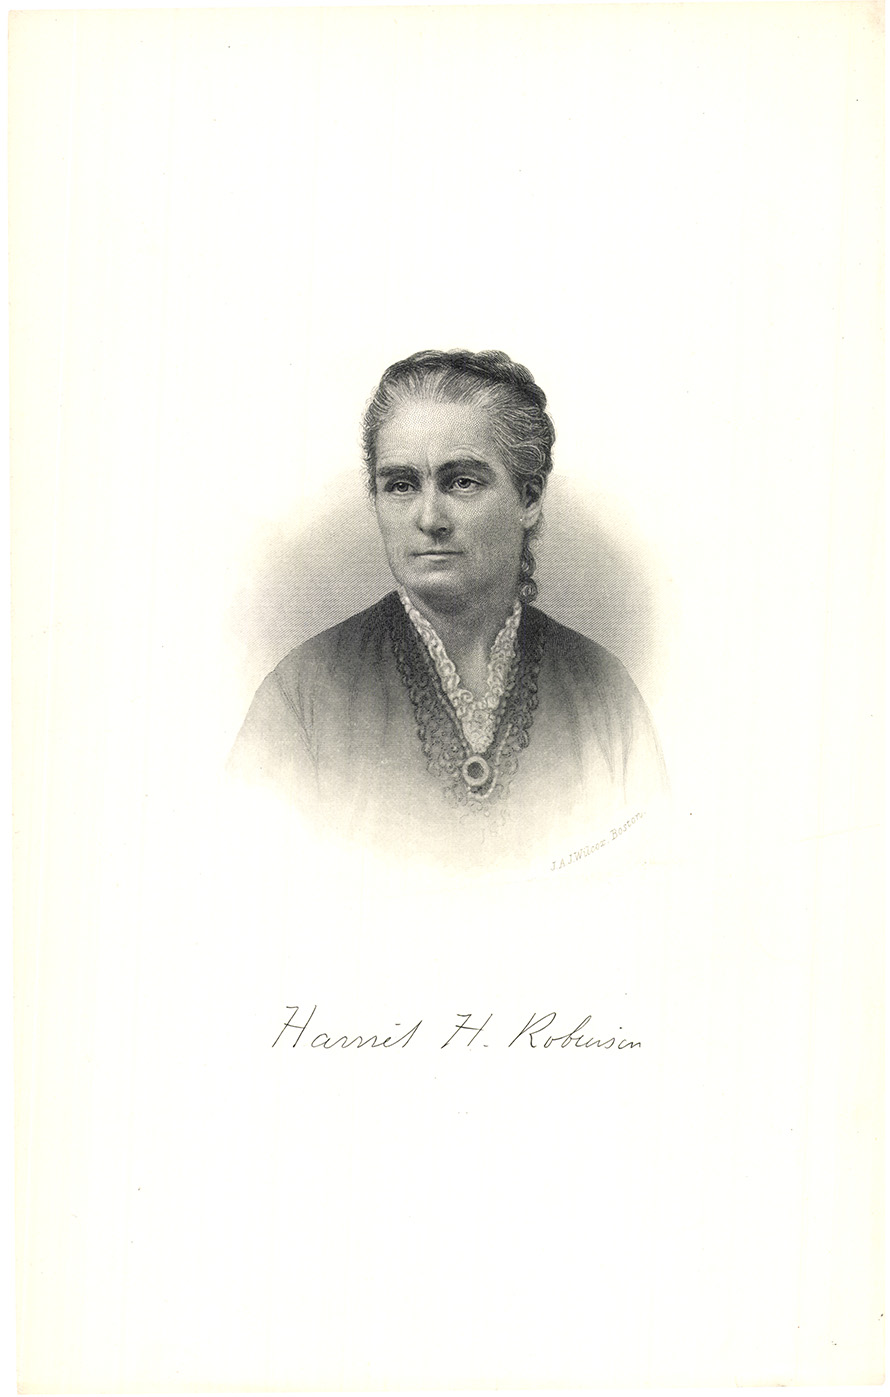 Harriet H. Robinson